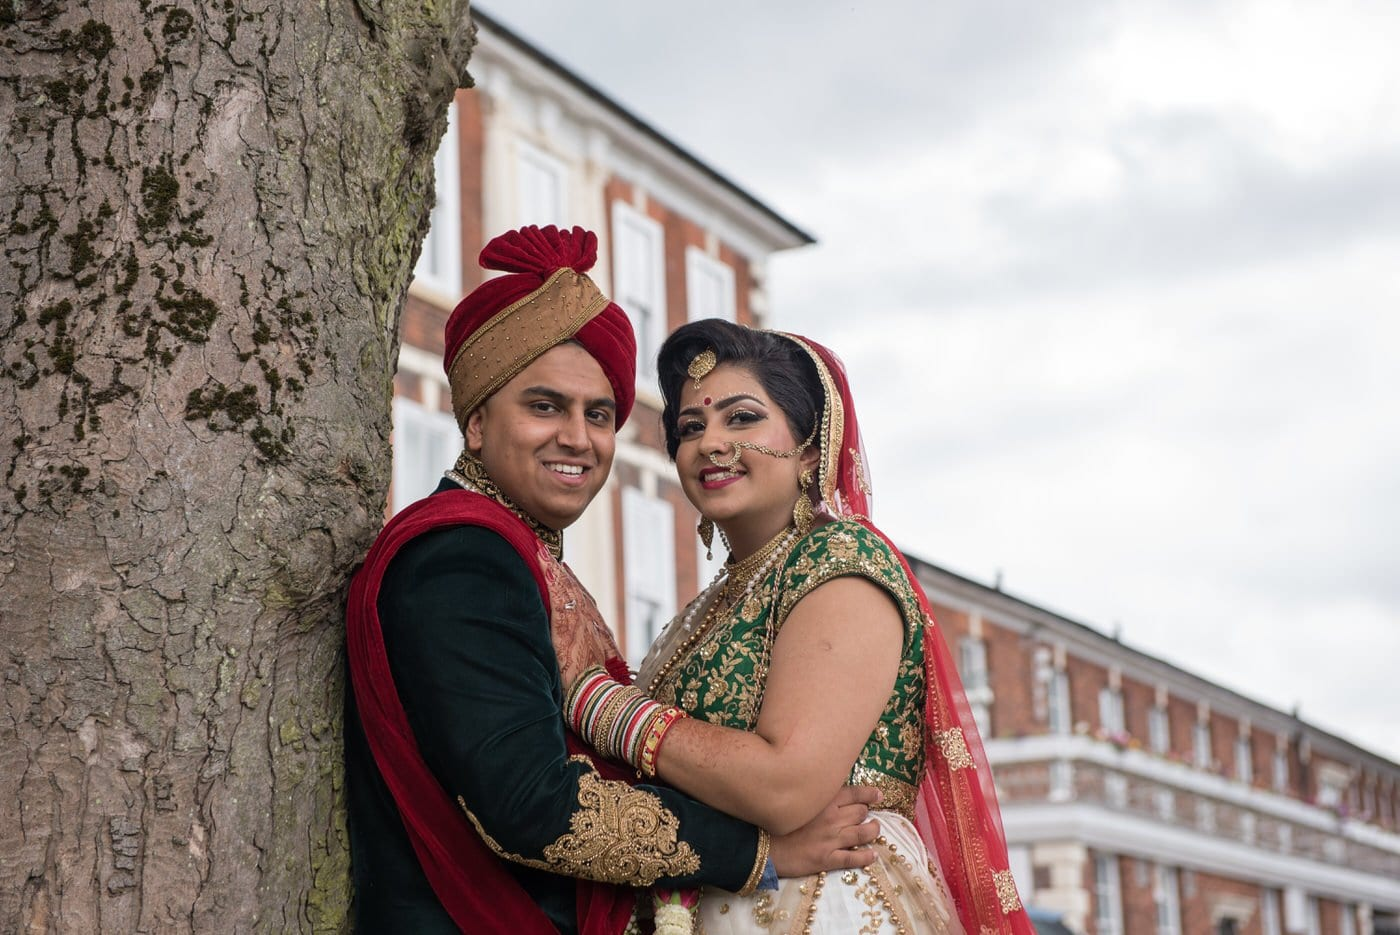 Hindu Wedding Photography and Video at Park Hall // Sachin and Serena